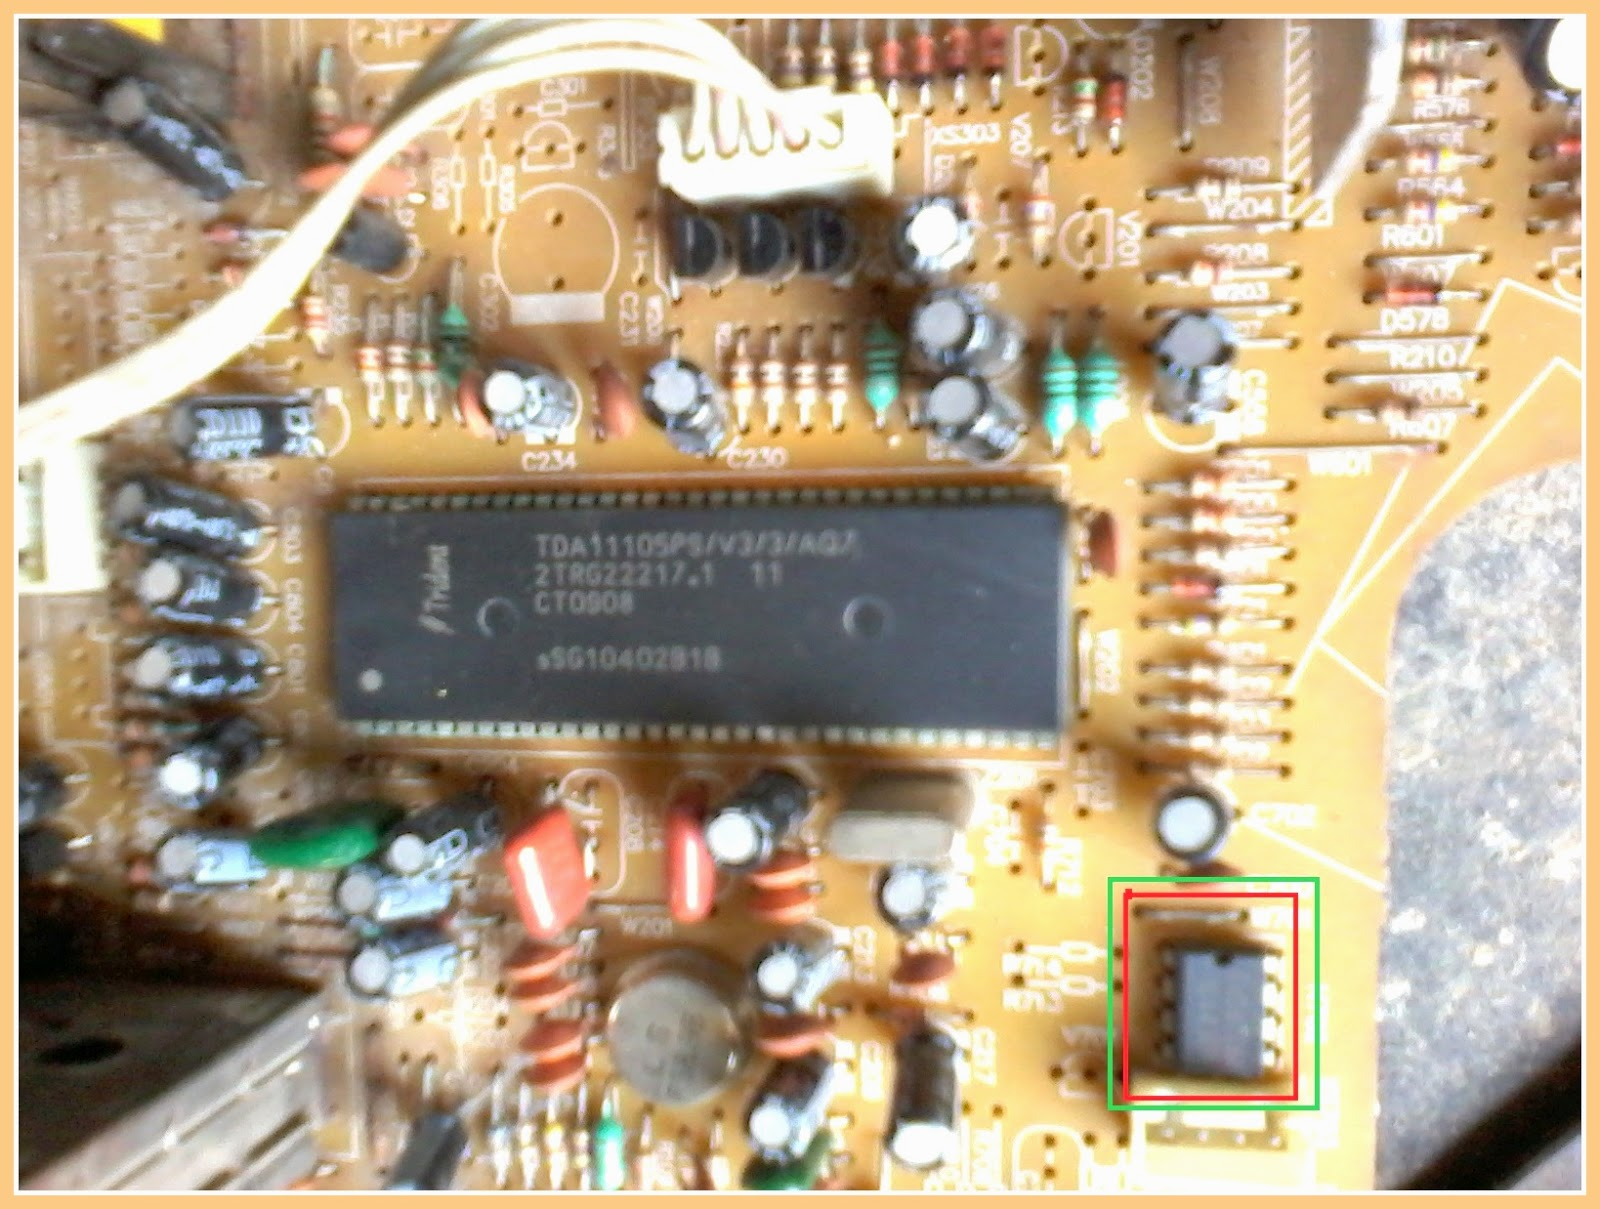 Color Tv Circuit Diagram Tda11105 Tda11106 Signal Processor T V Click On The Schematic To Magnify